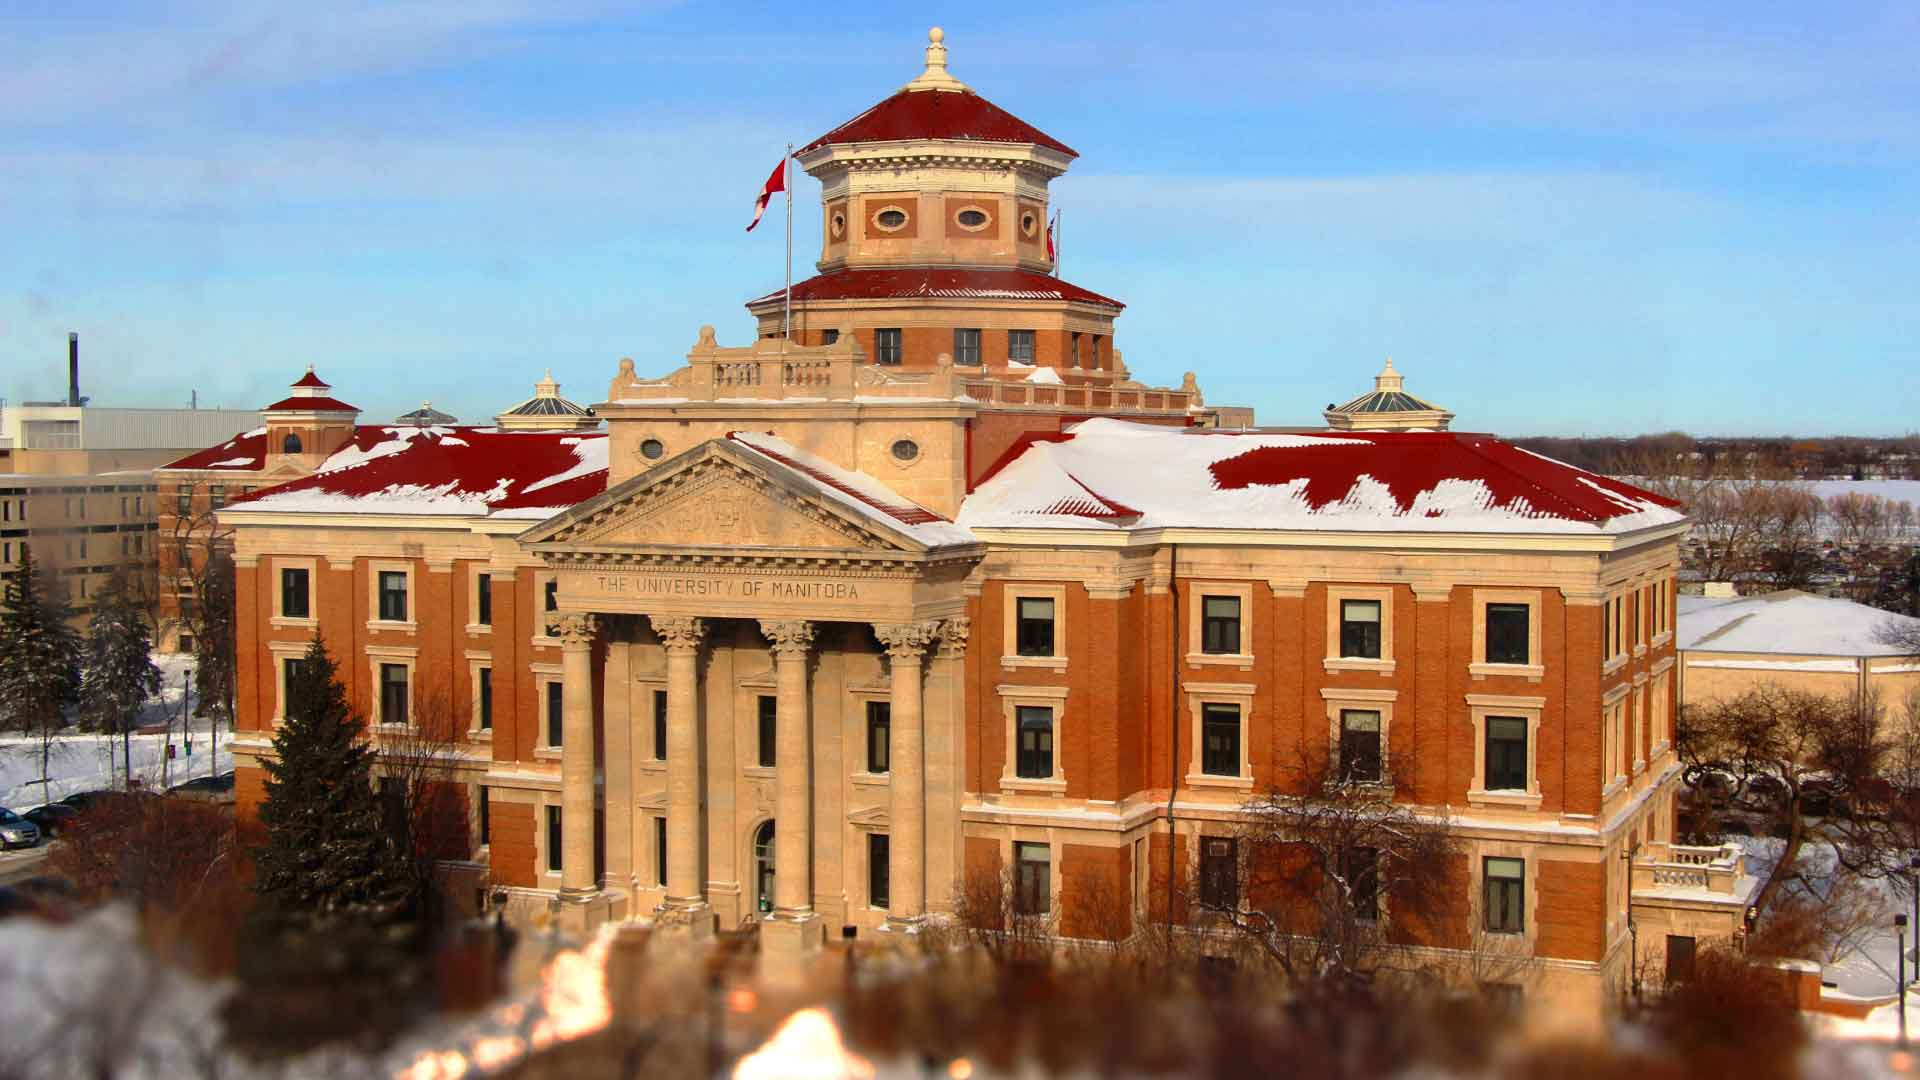 Blue skies above the University of Manitoba Administration Building with snow